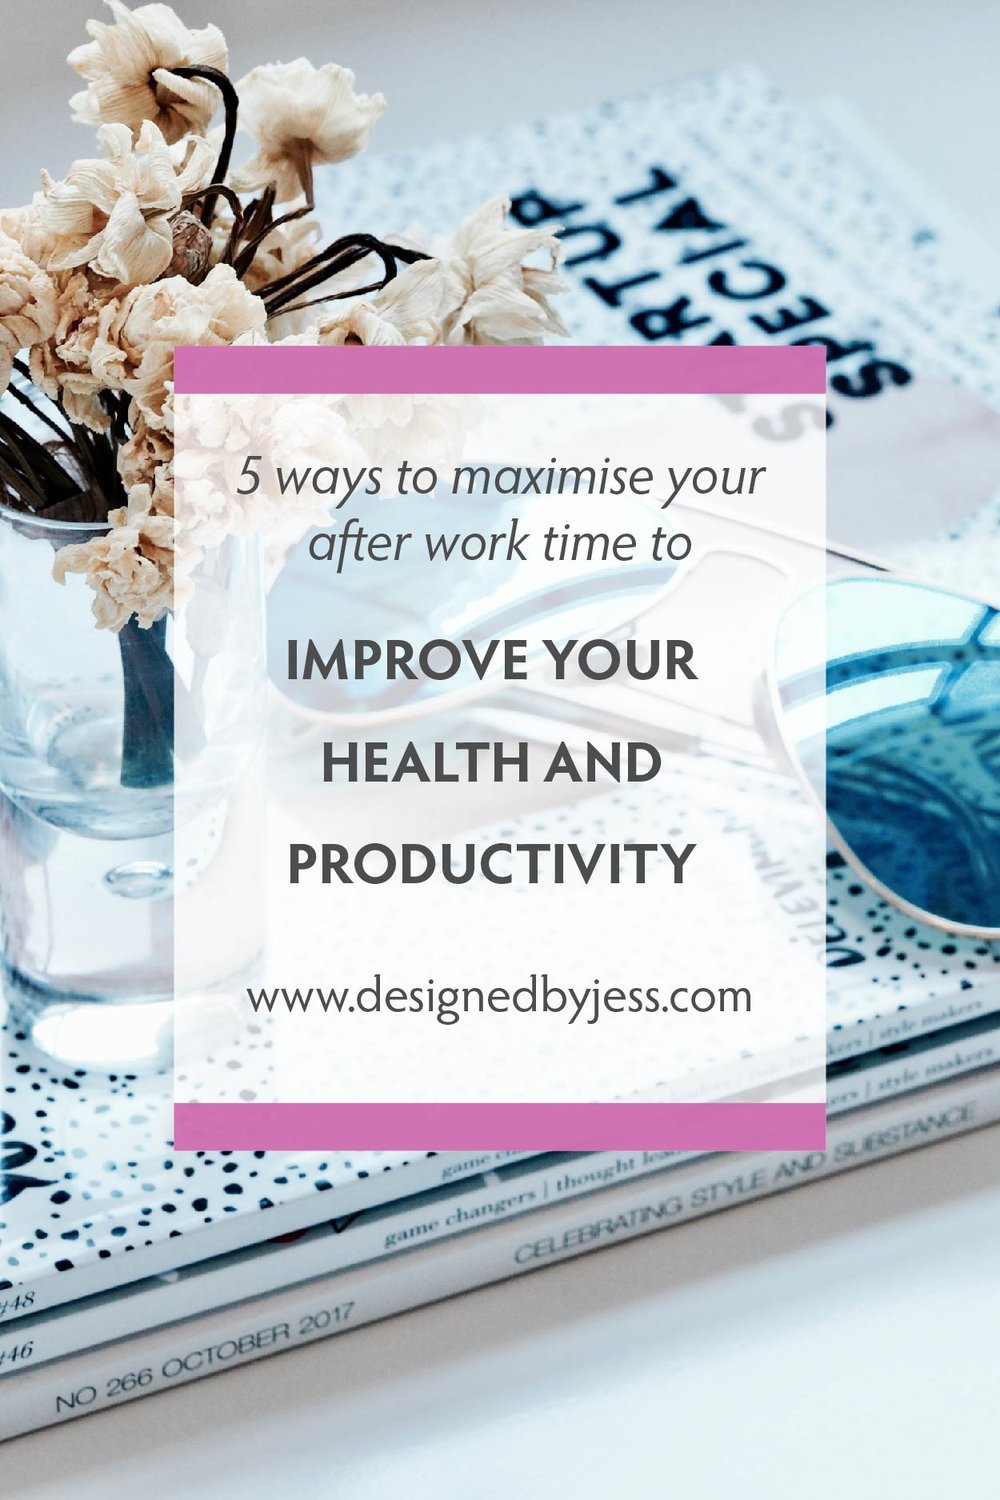 5 ways to maximise your after work time to improve your health and productivity - Designed by Jess